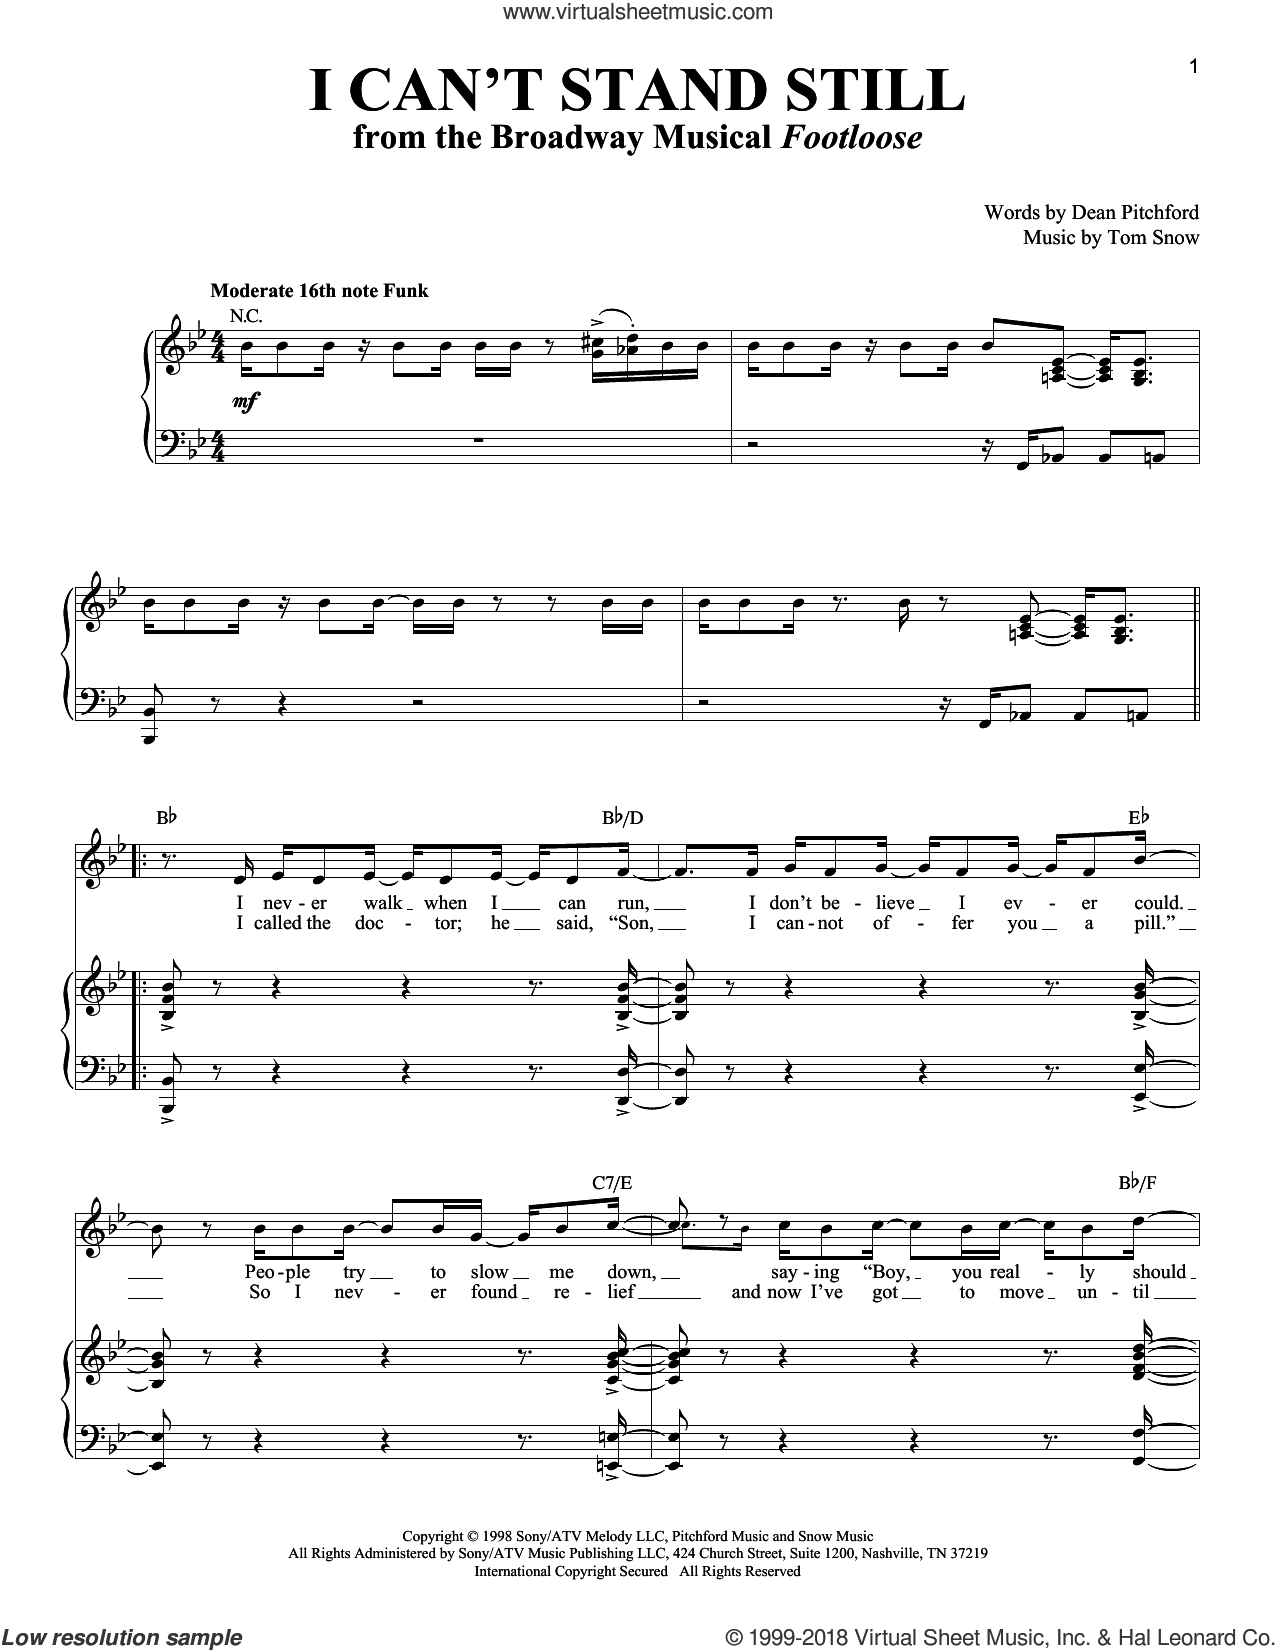 I Can't Stand Still sheet music for voice and piano by Dean Pitchford, Richard Walters and Tom Snow, intermediate skill level